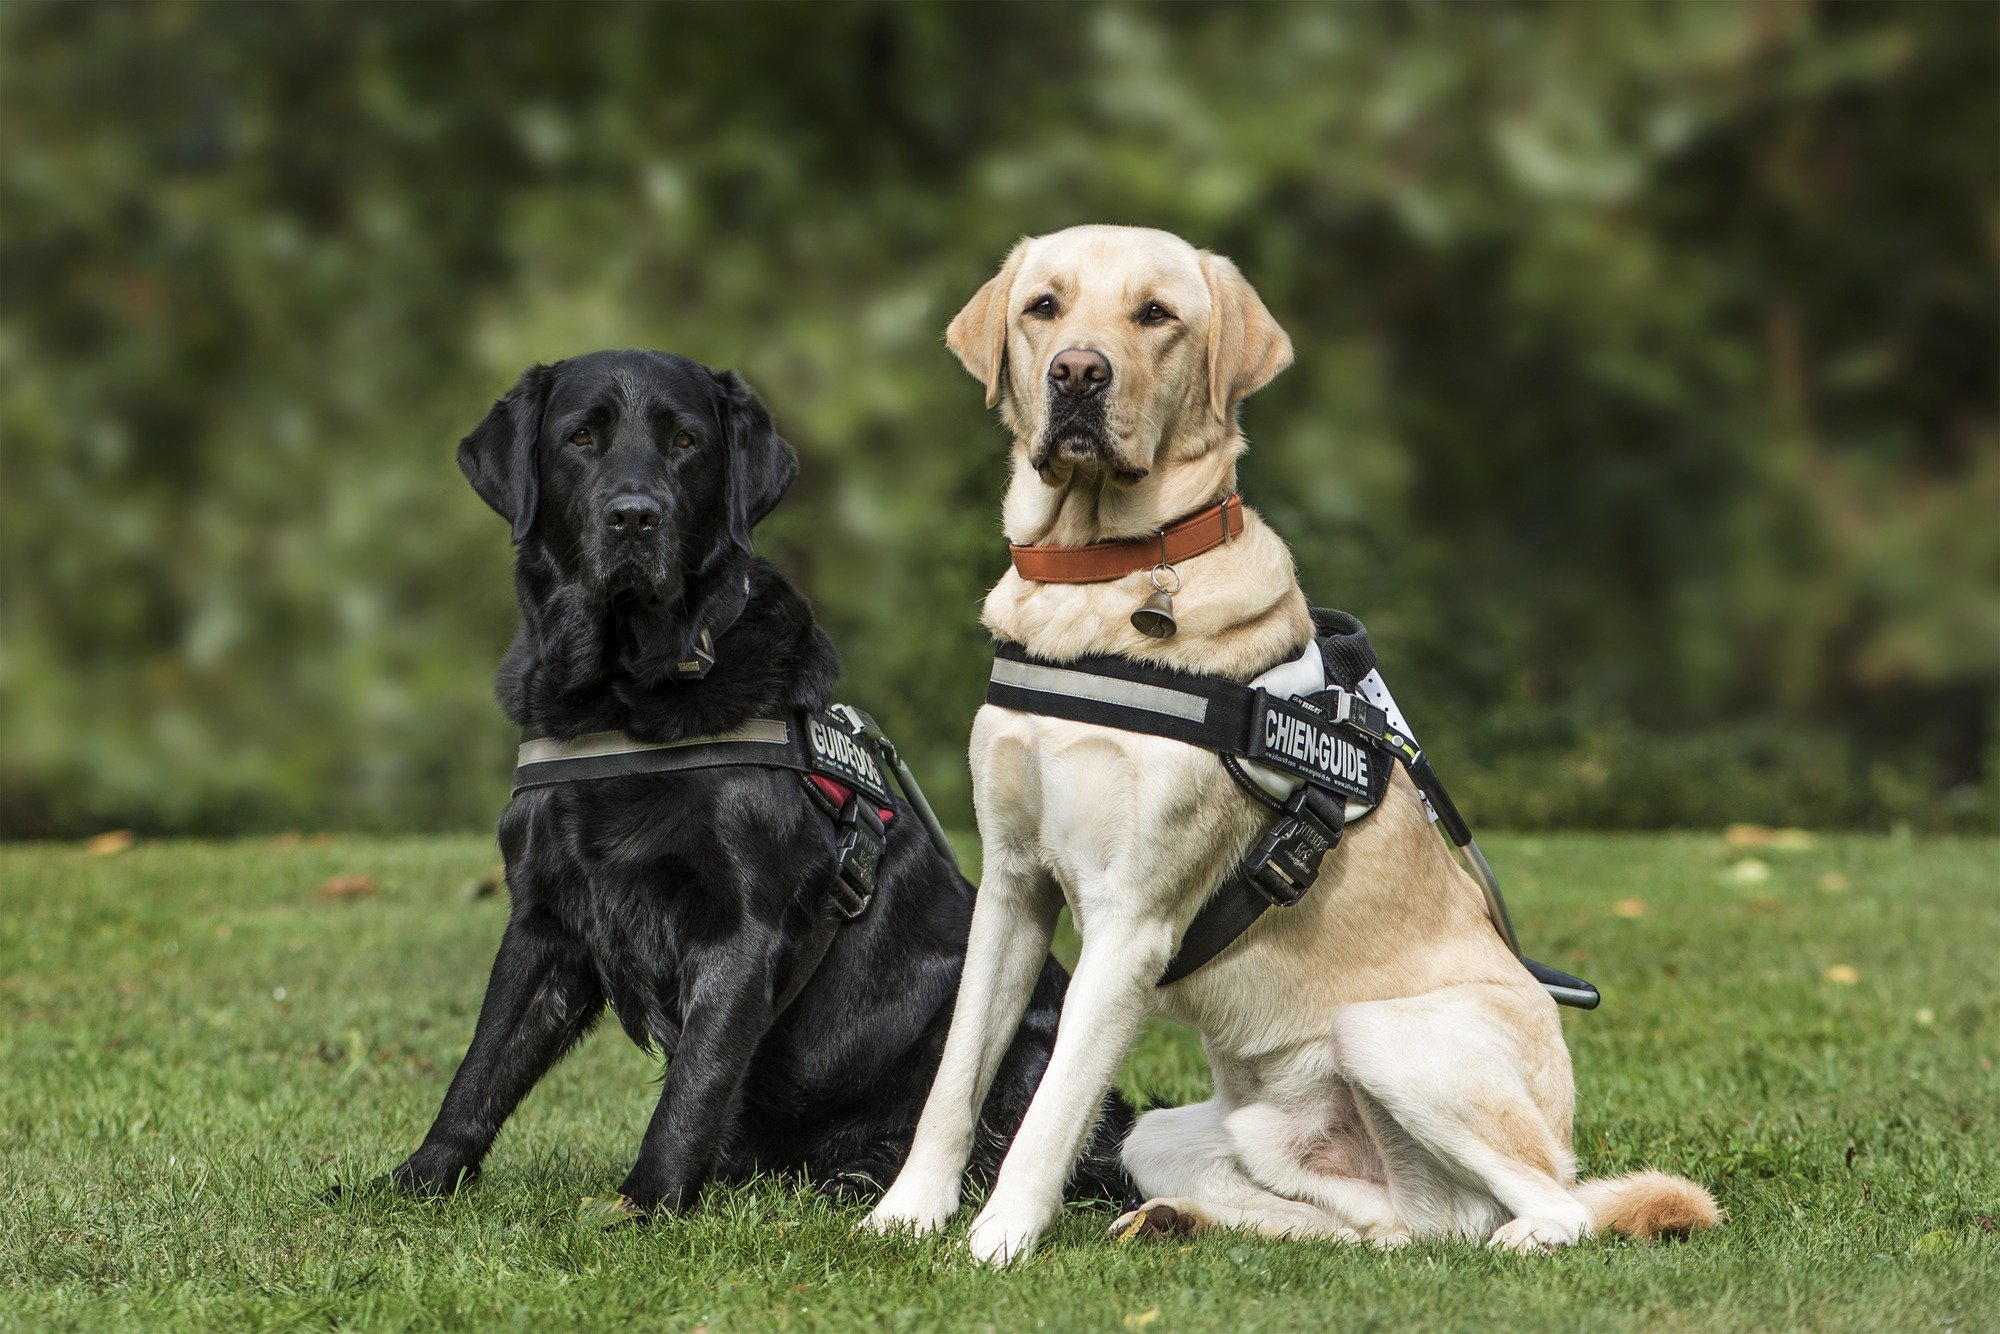 How the Therapy and Service Animals